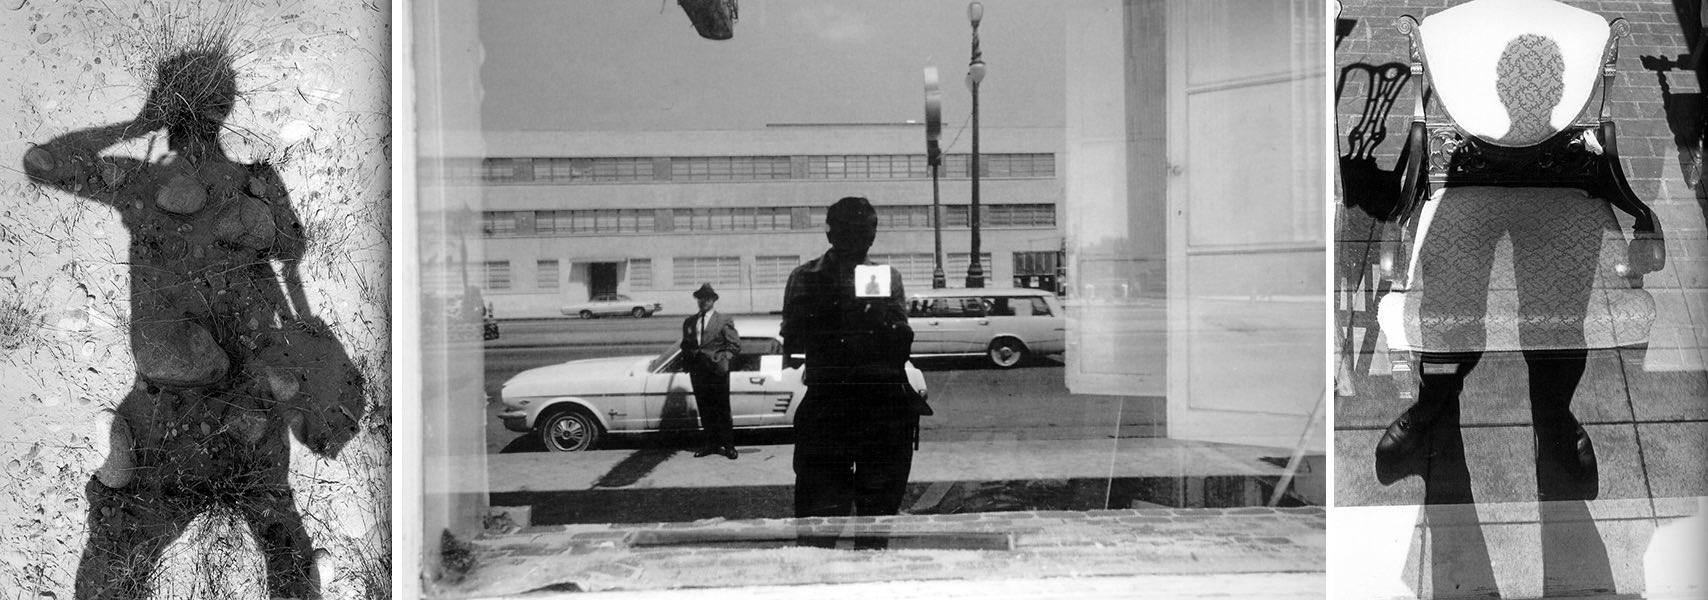 w24 Lee Friedlander 60s self portrait iFocus.gr